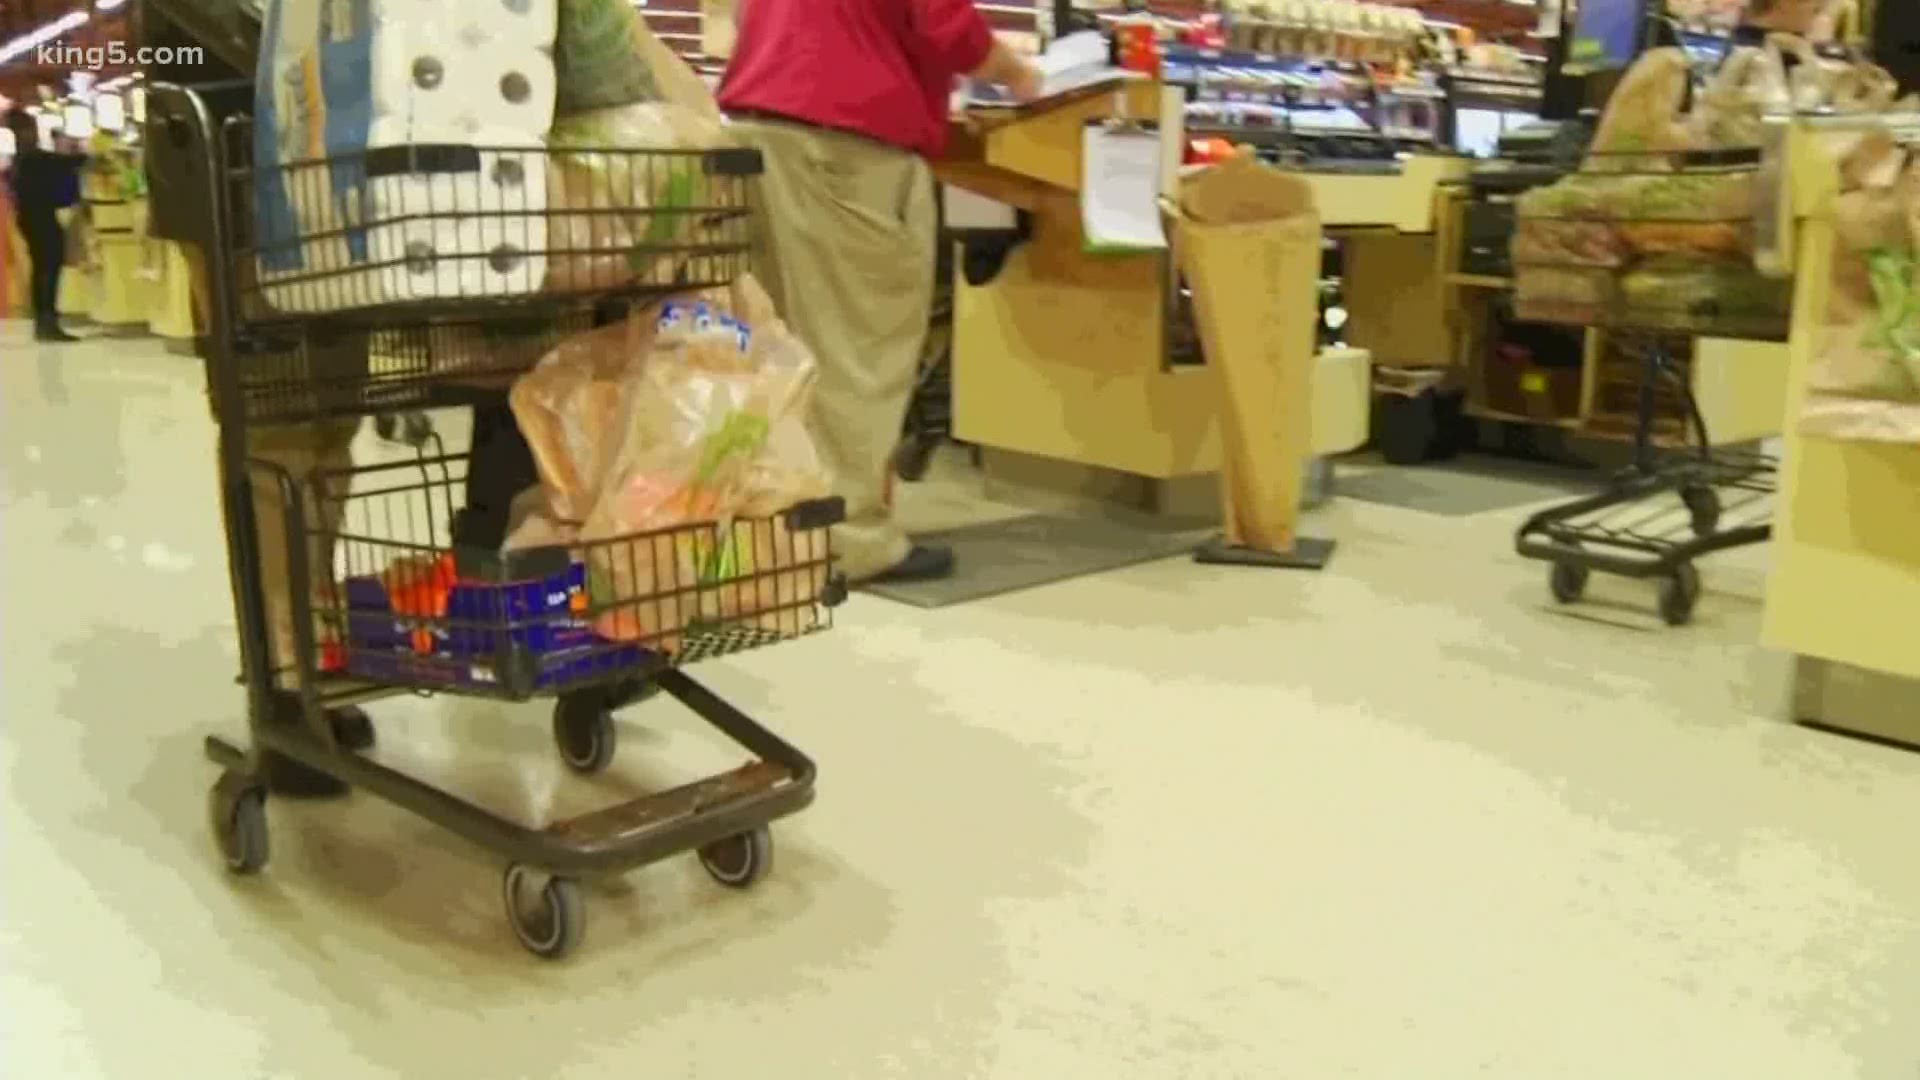 Washington Residents On Food Assistance Will Get Extra Money